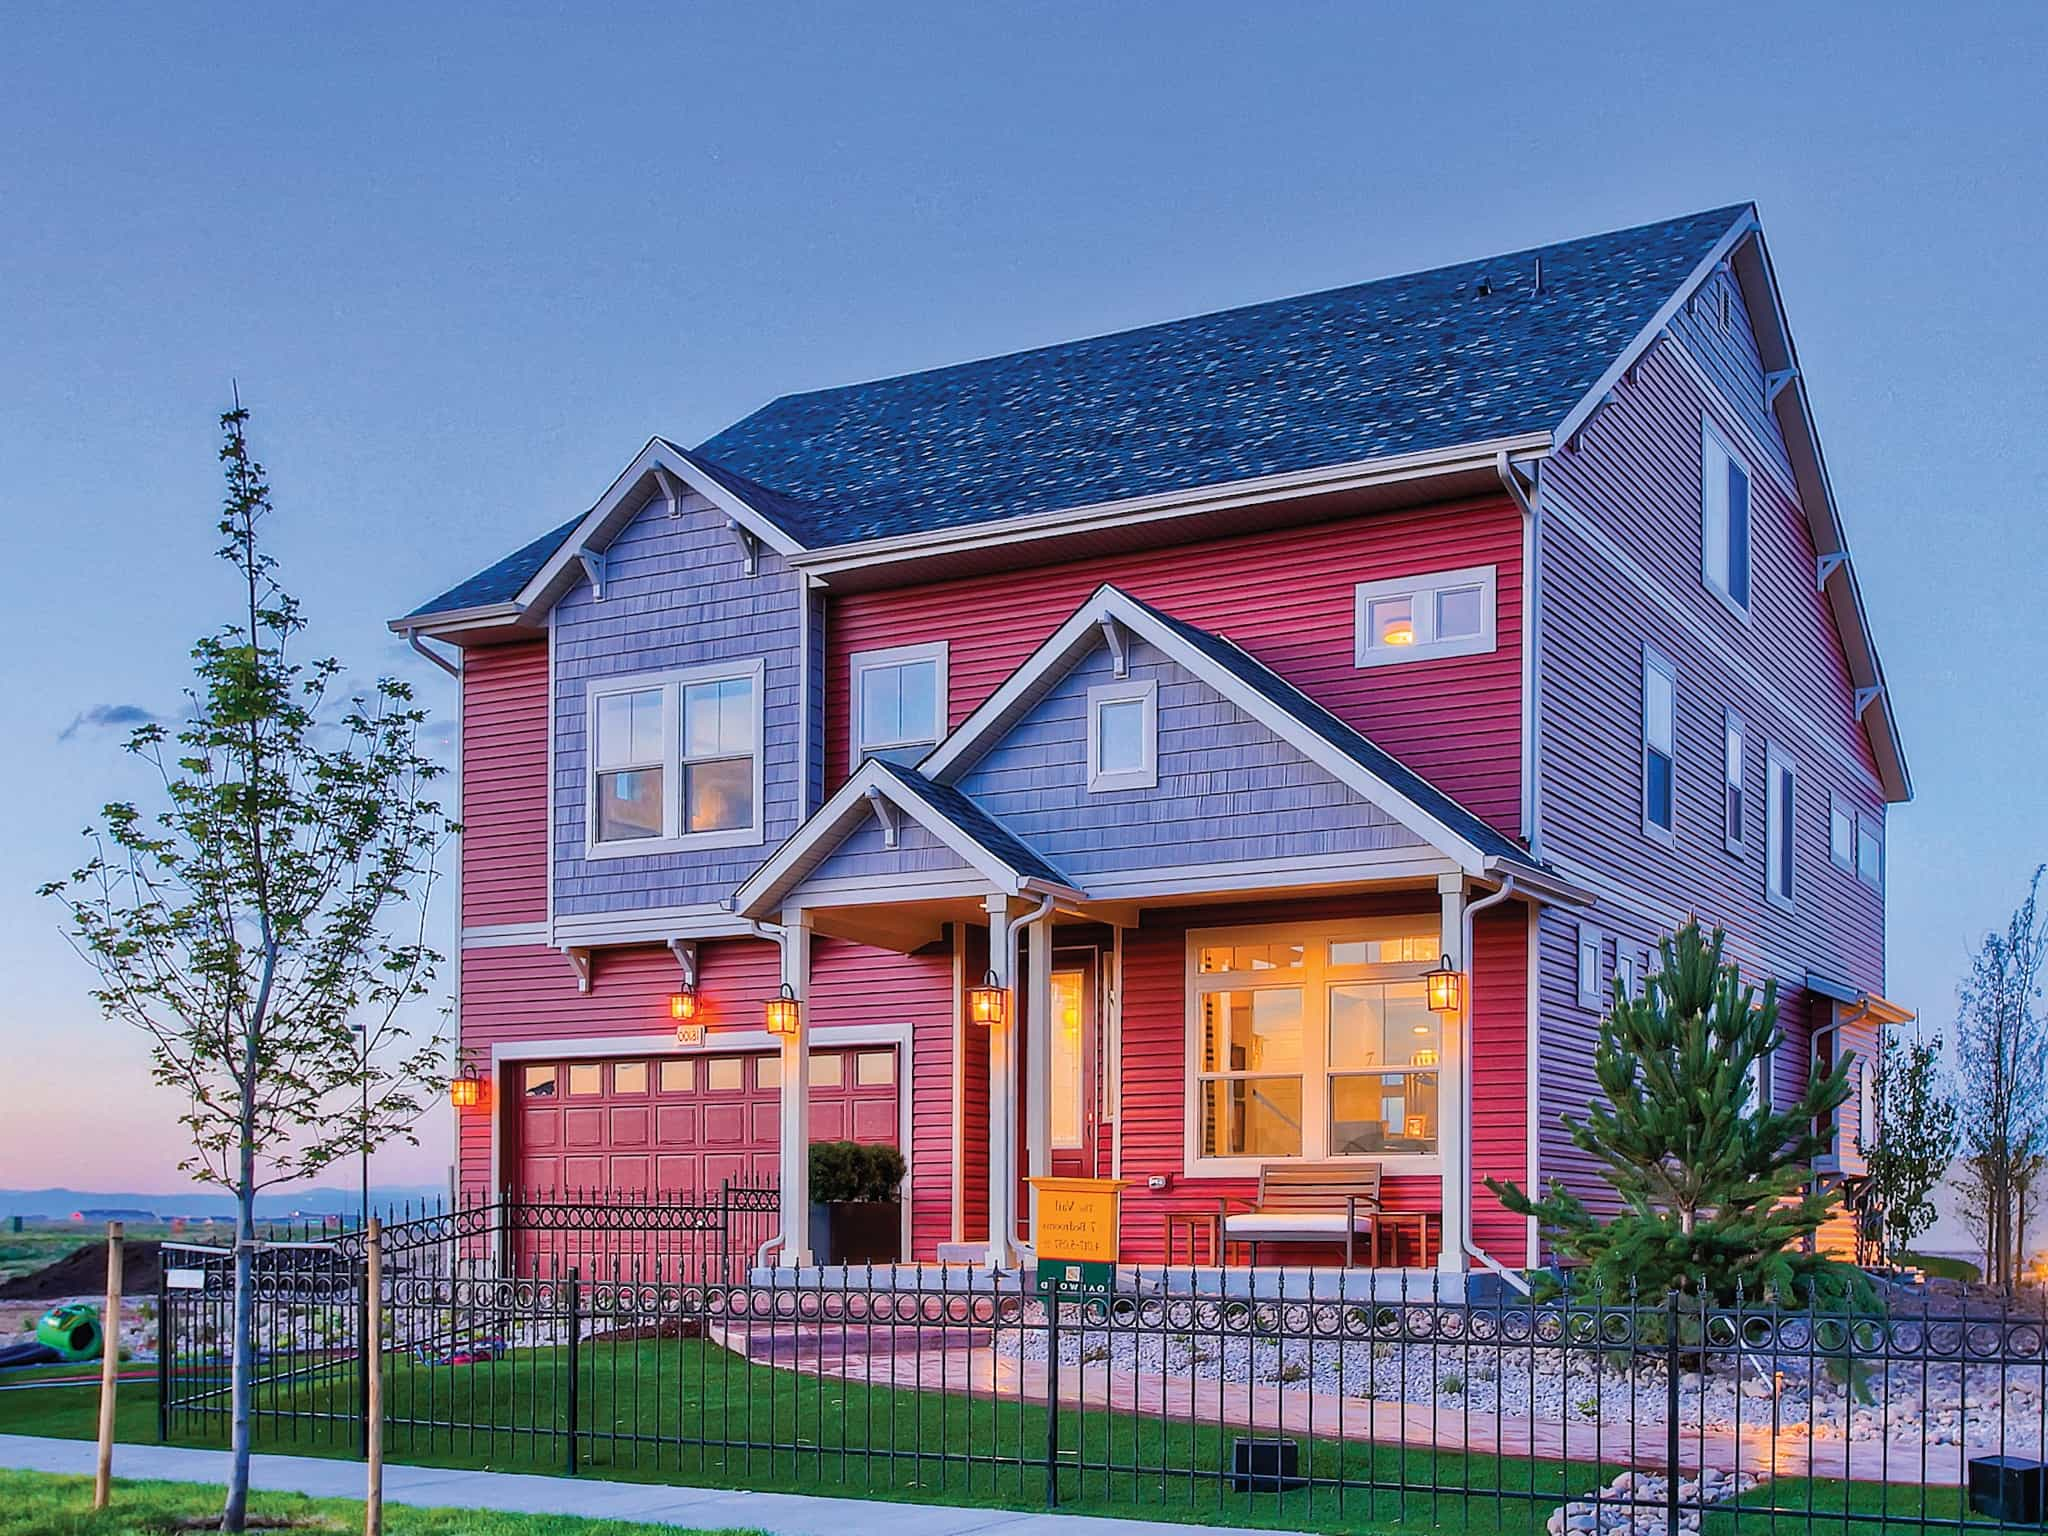 Featured Image of Cape Cod House Exterior With Red Siding